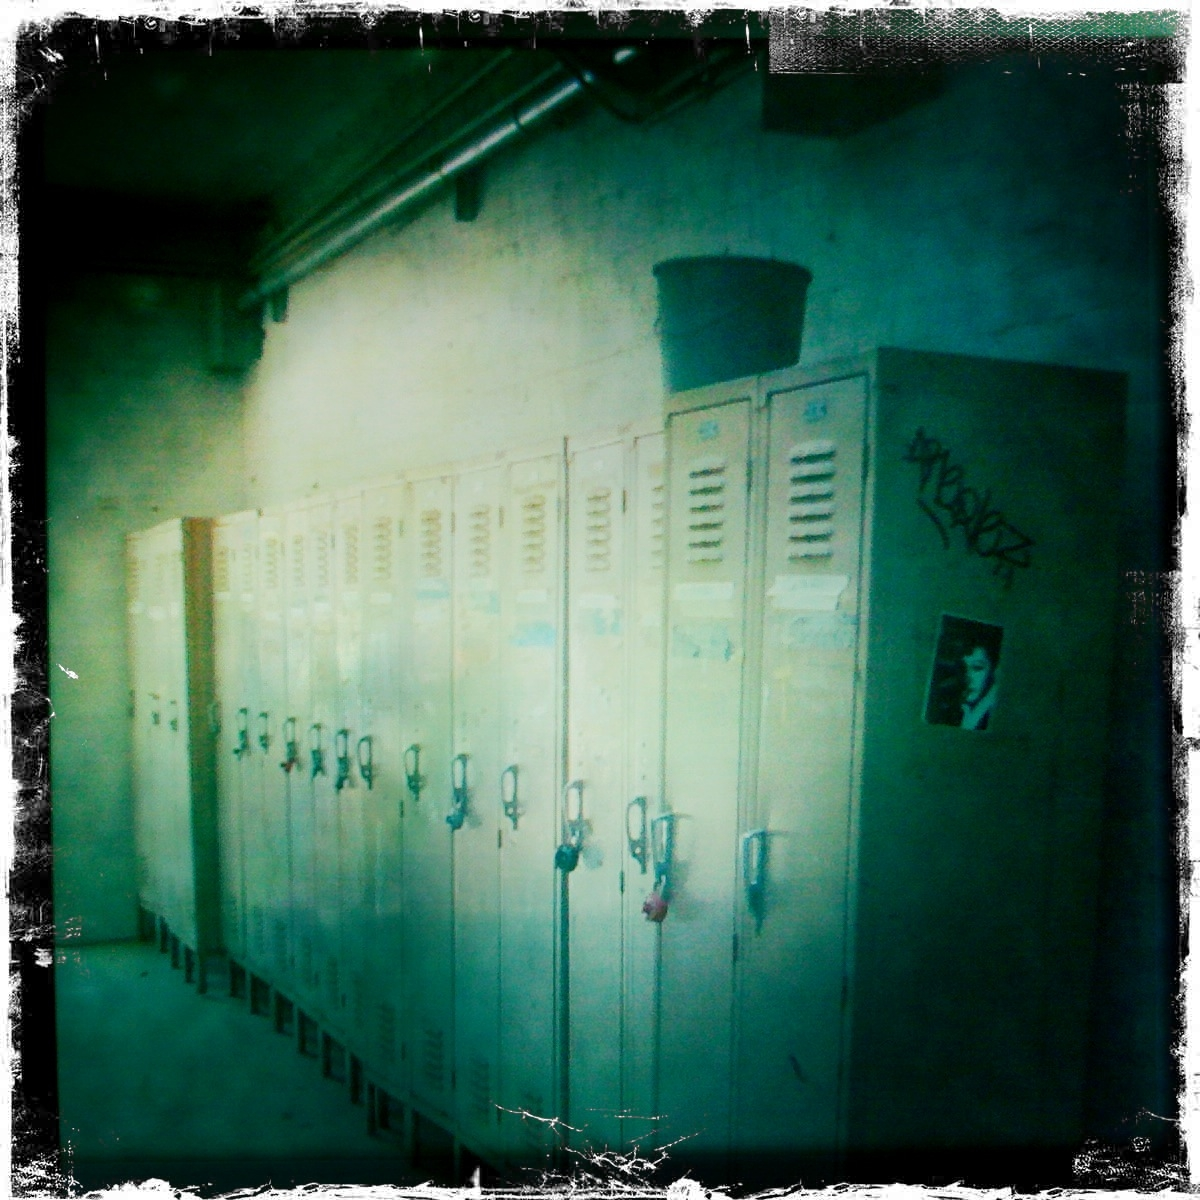 a row of lockers